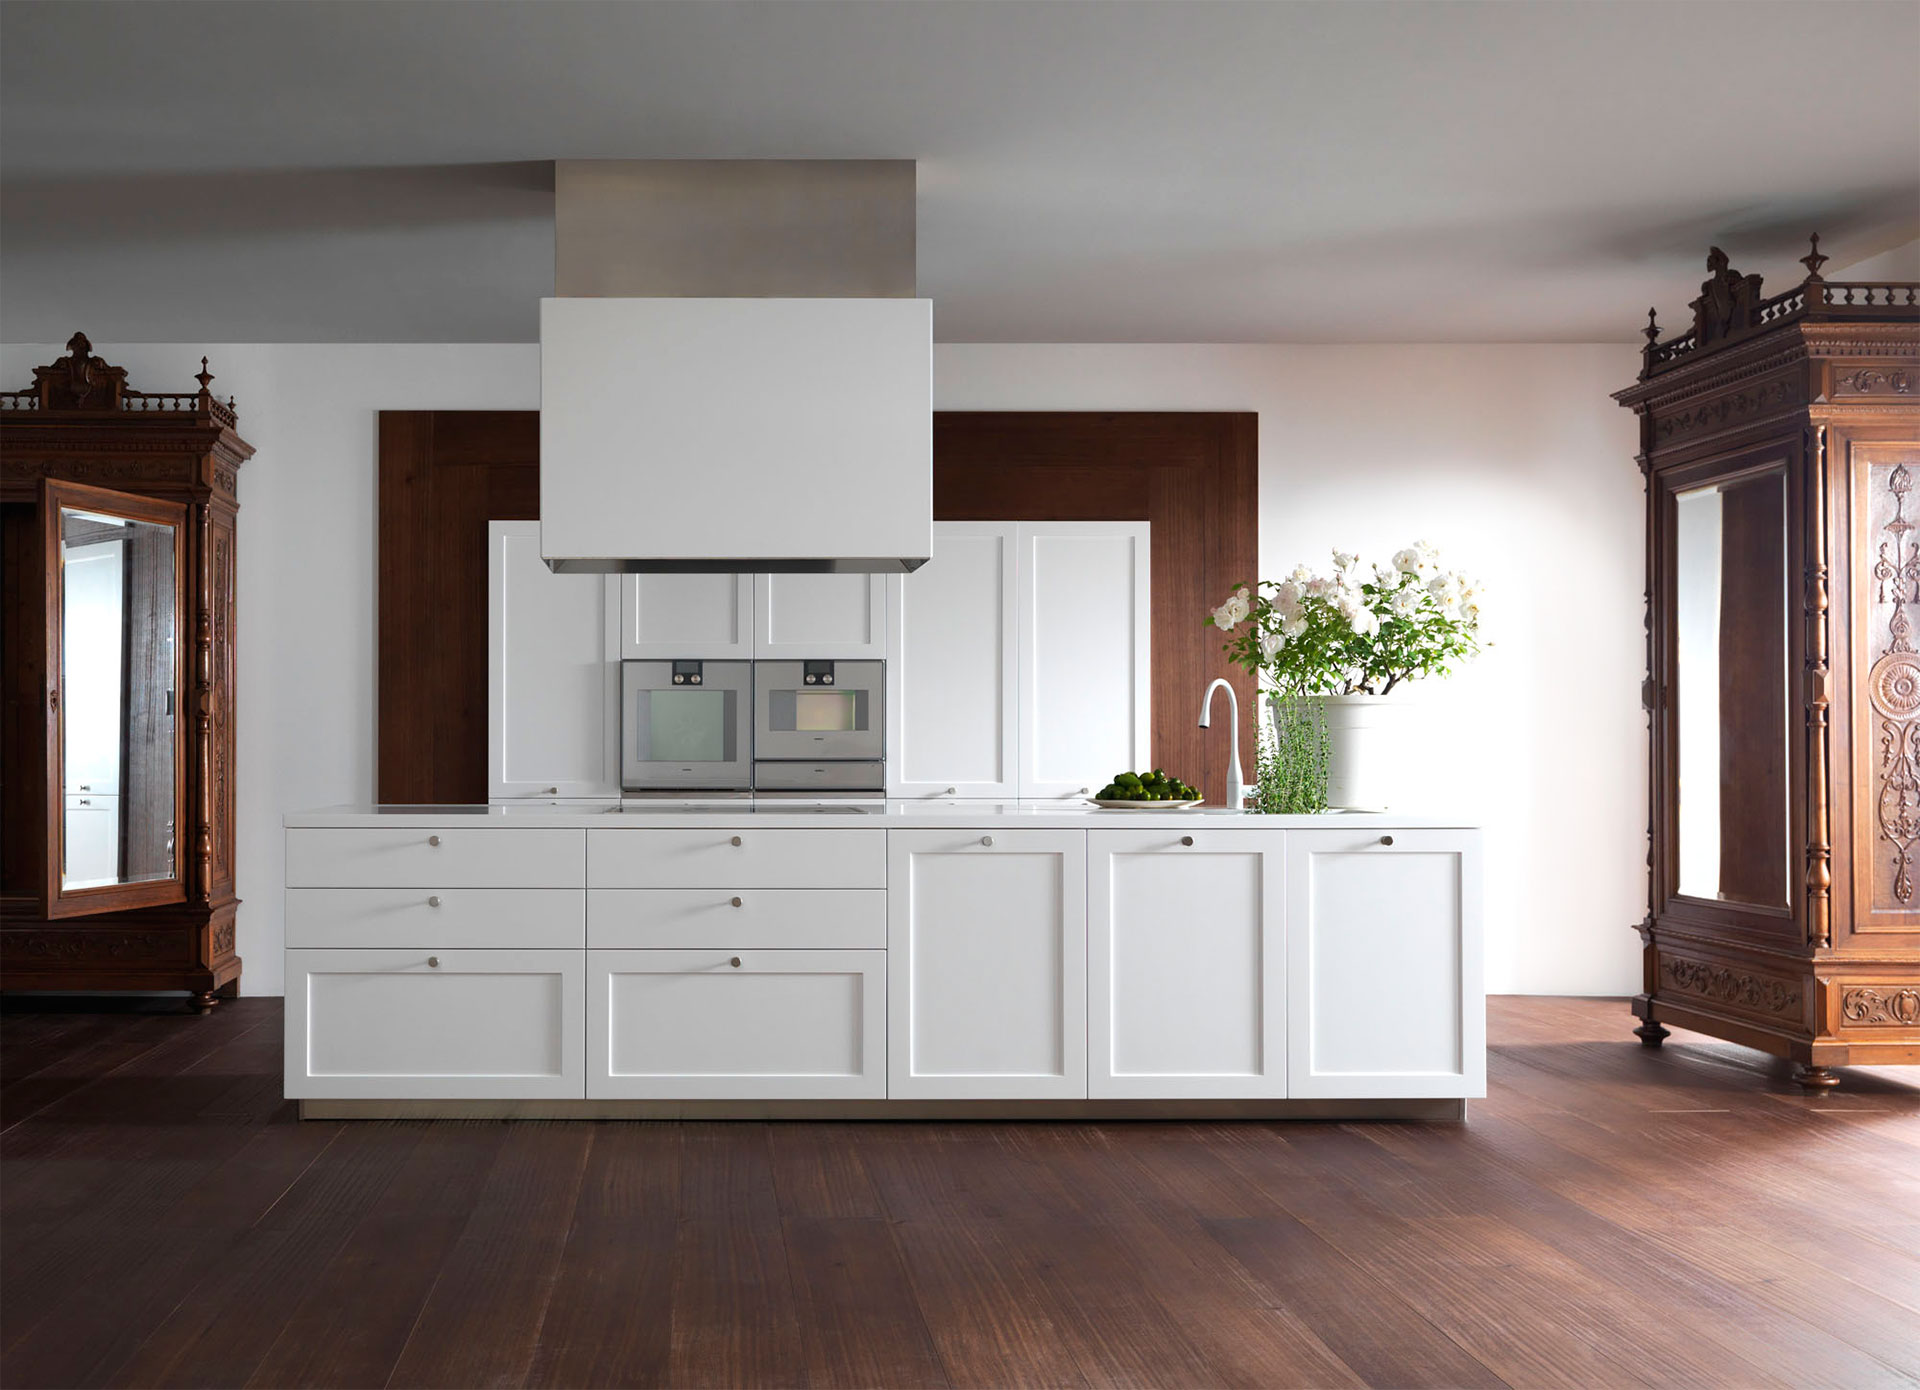 Cucine italiane top kewego with regard to cina contract - Cucine gratis roma ...